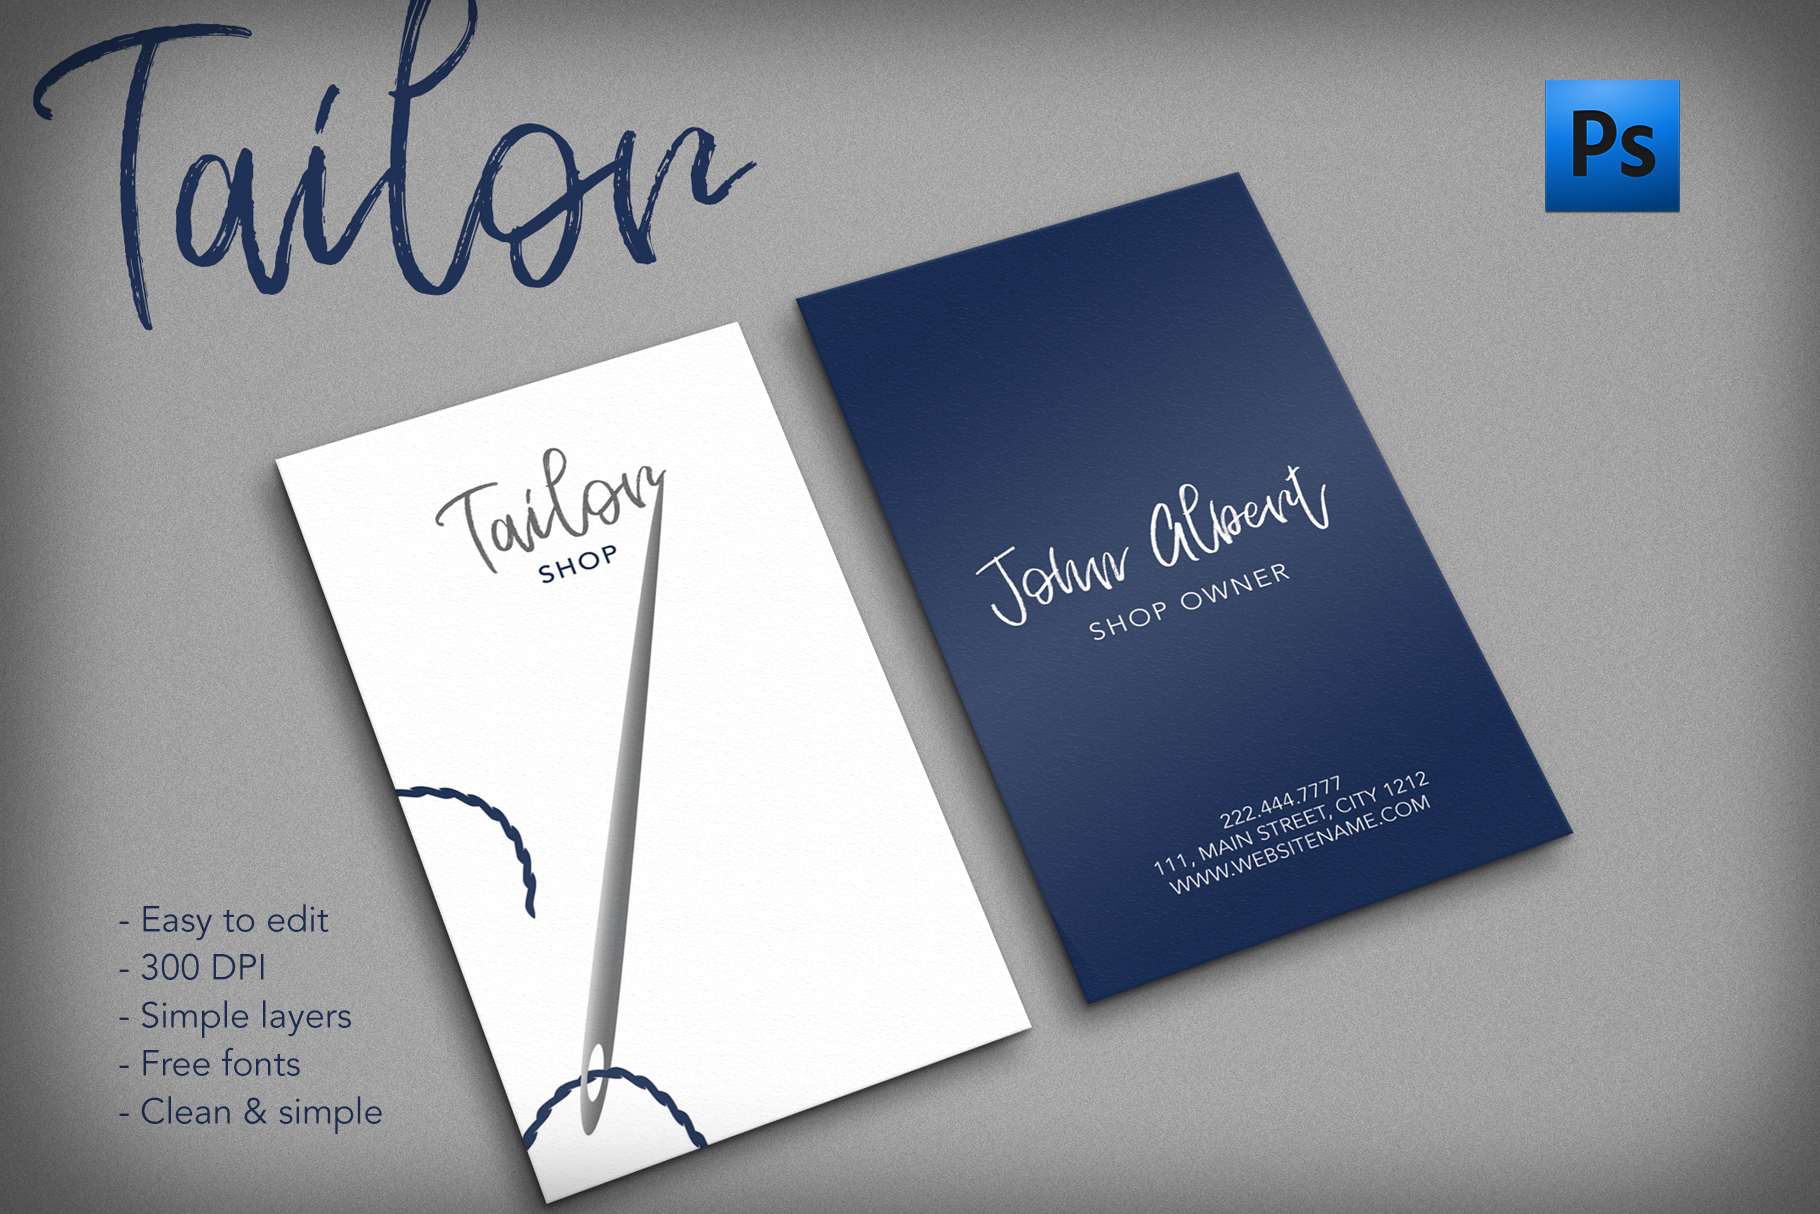 Tailor shop creative business card example image 1